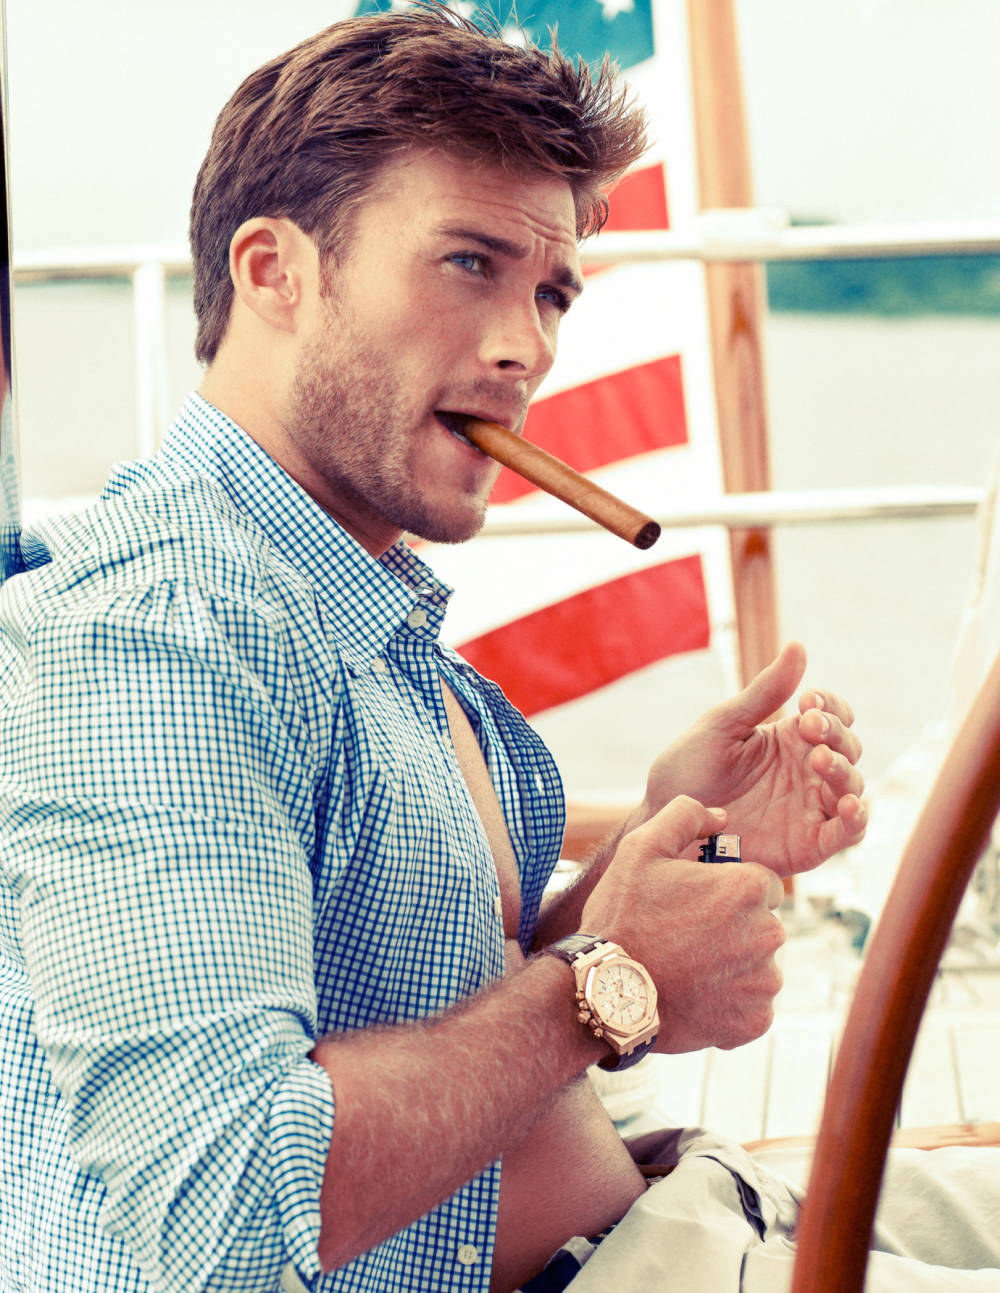 http://www.omgblog.com/media/2014/11/1379453349_scott-eastwood-hi-res.jpeg